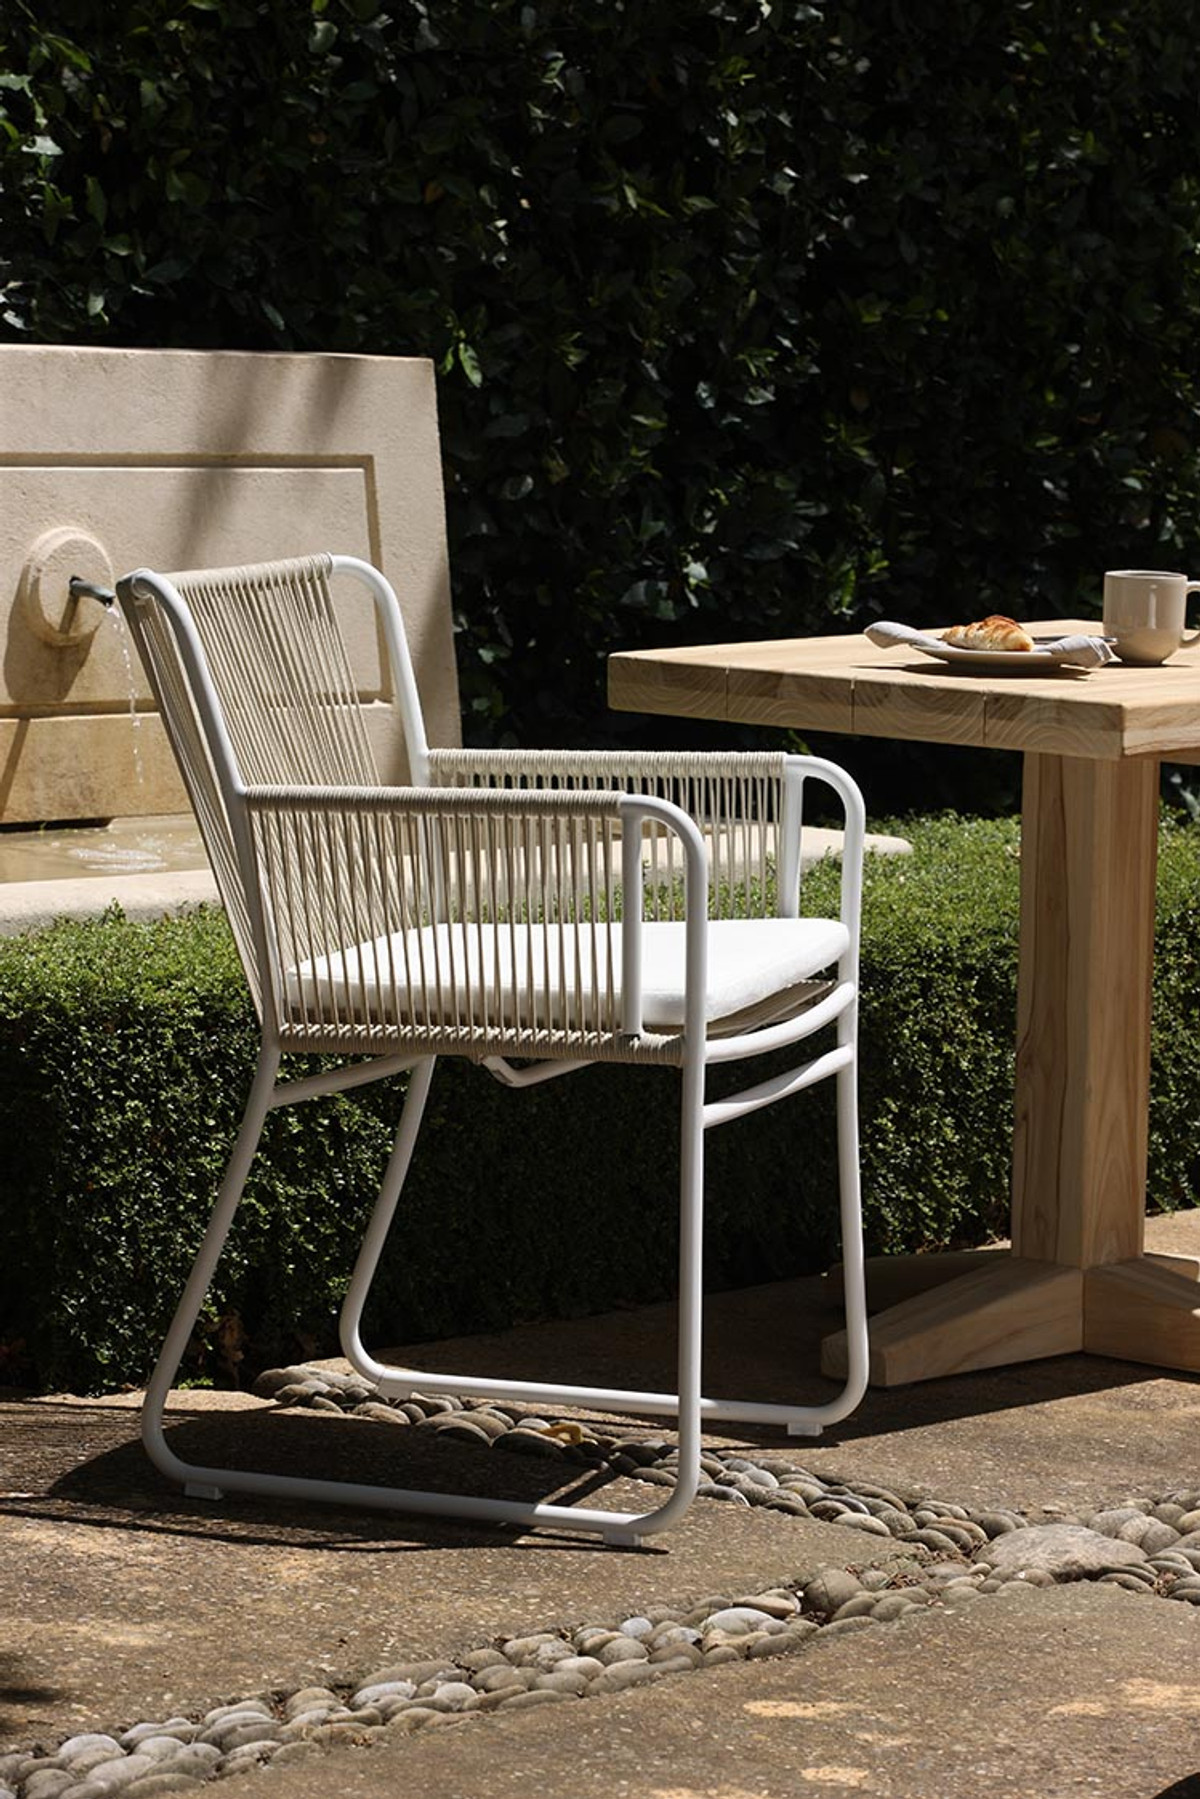 Portland bistro aged teak outdoor table 80 x 70 x 76H